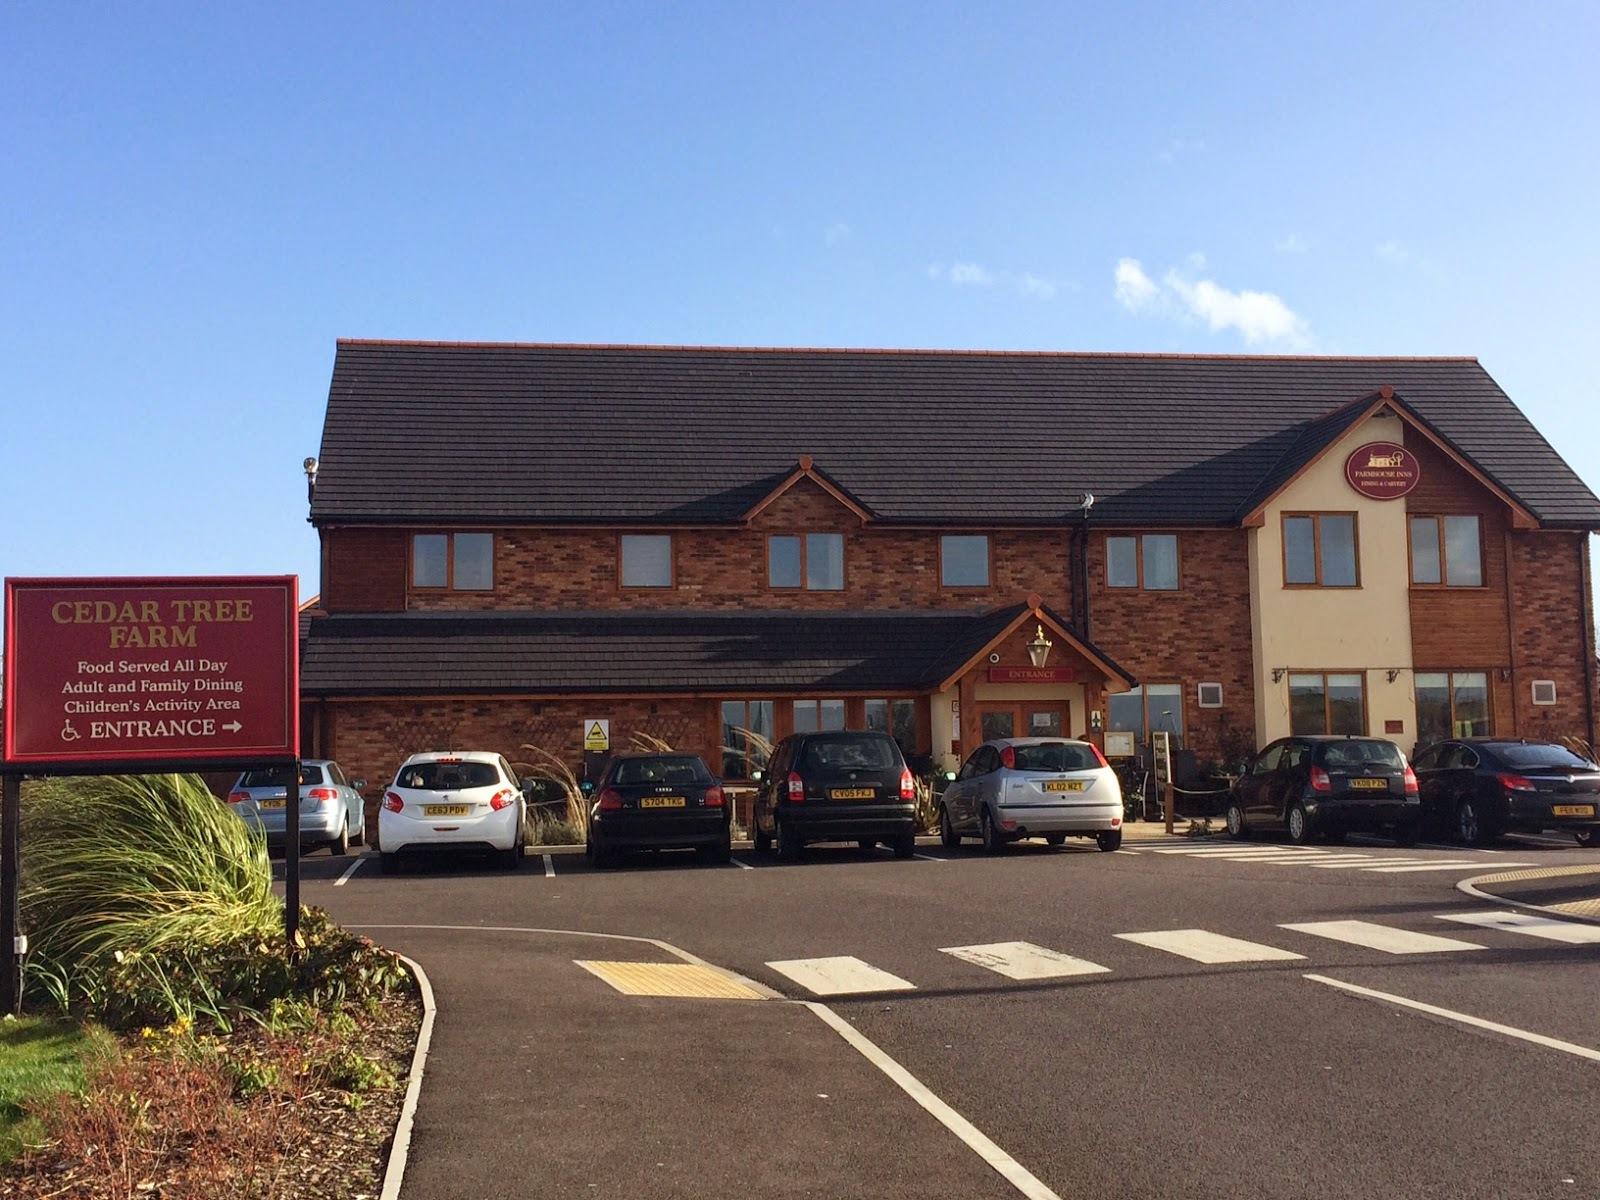 Carvery, Cake & Community - Restaurant Review: Cedar Tree Farm, Cardiff